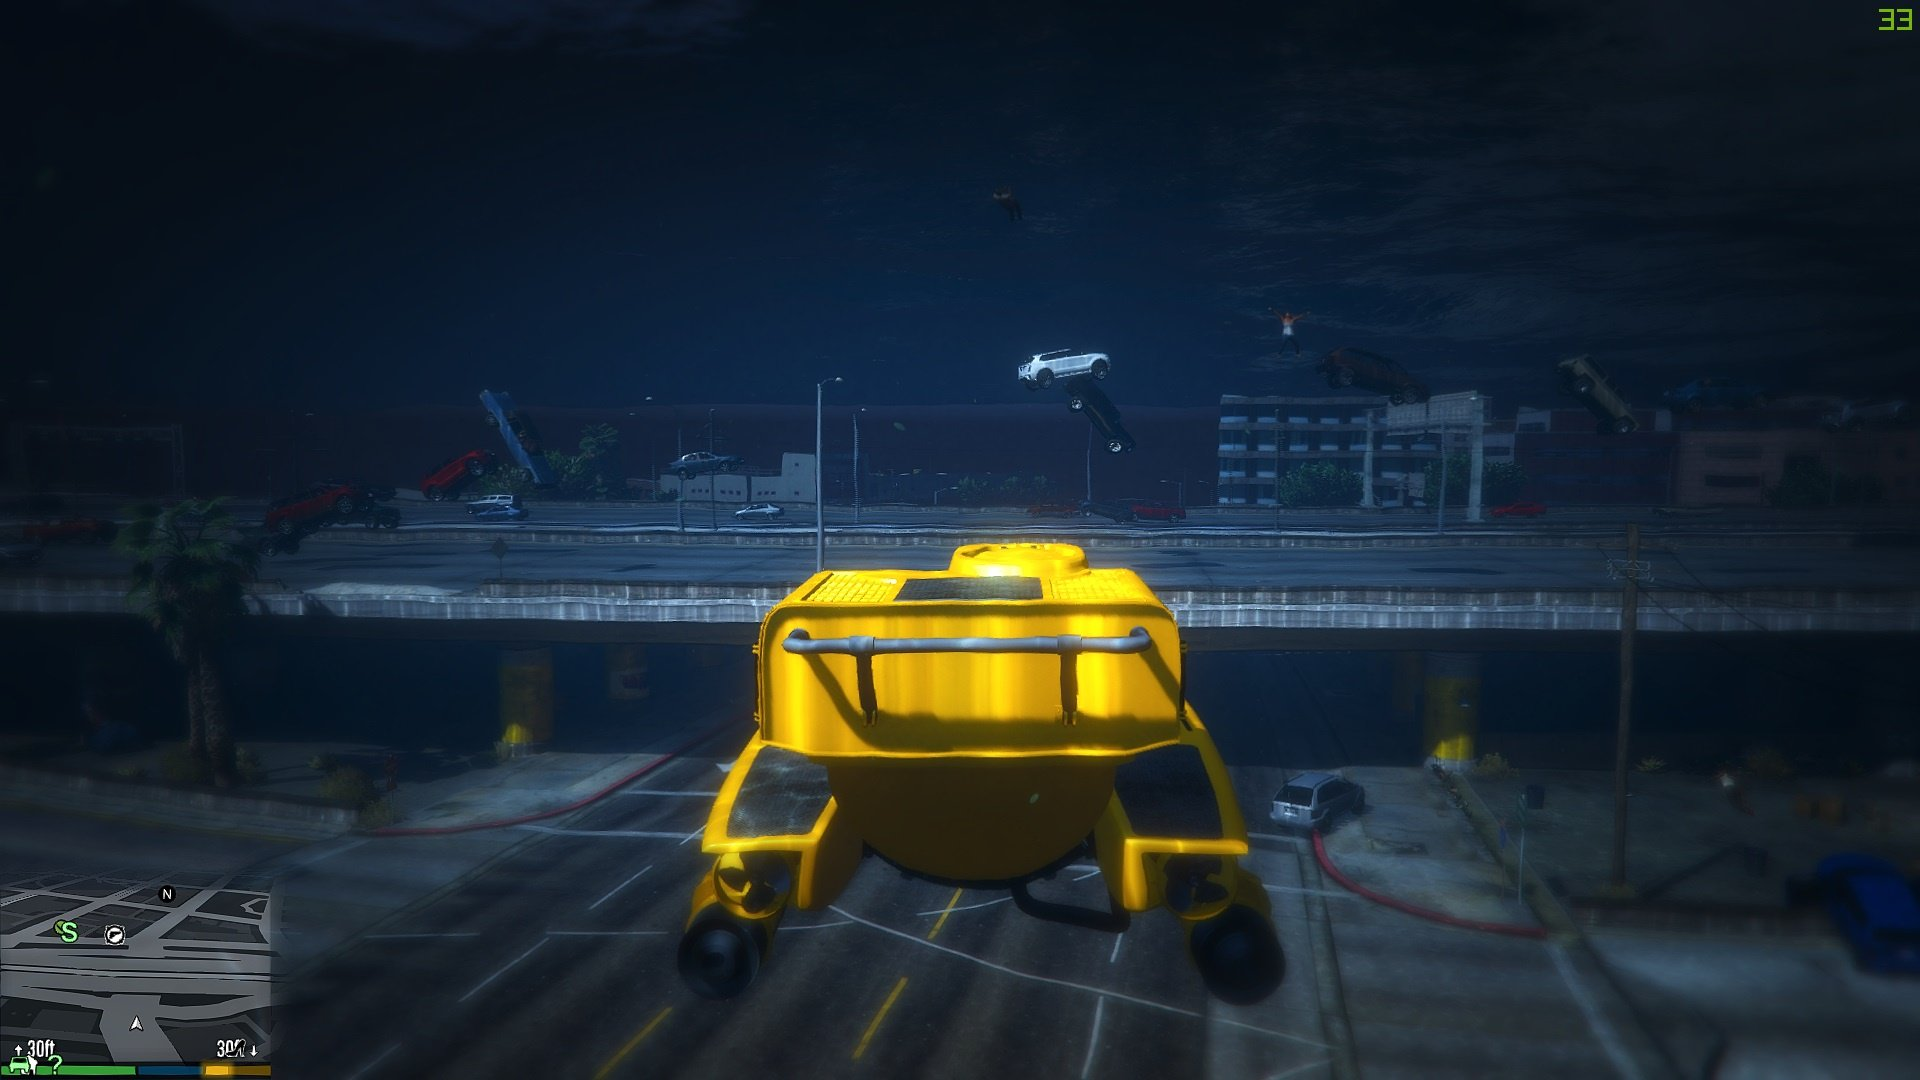 8 amazing GTA 5 mods that are worth your time - travel to